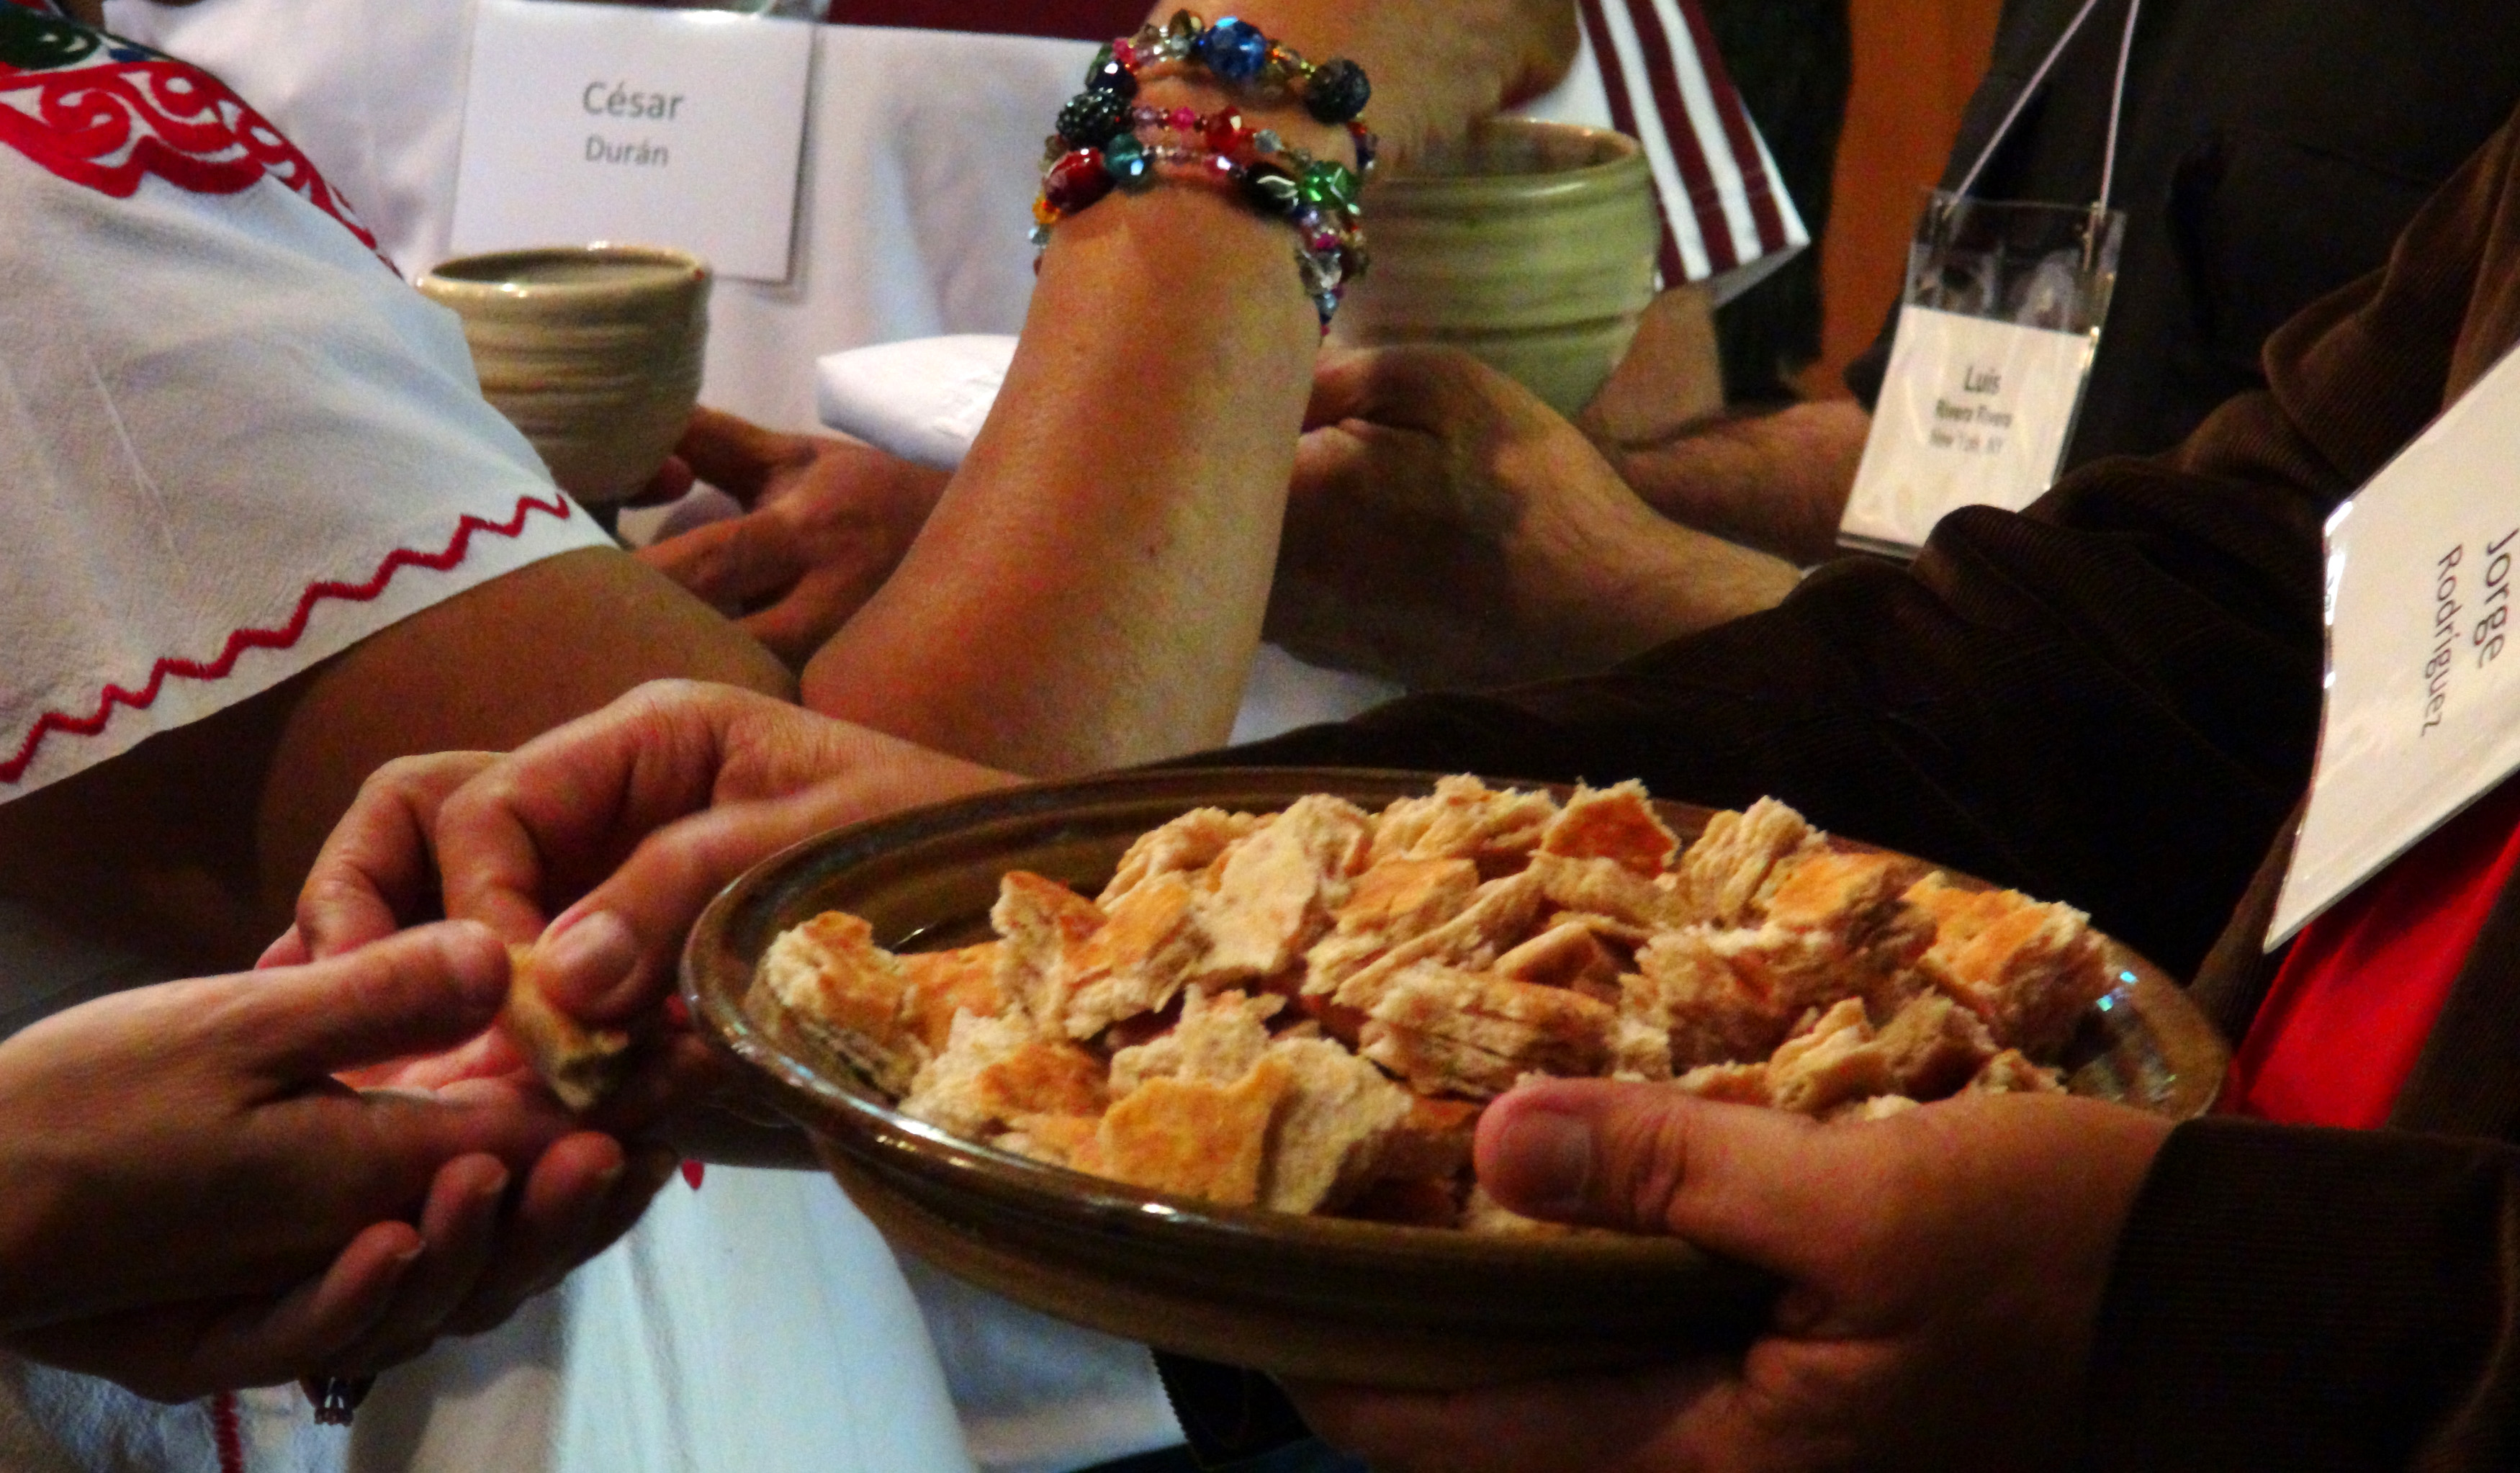 Members from six different Christian denominations gather for Communion at the first ecumenical Latino training for church planters and missioners. Photo by Michelle Maldonado, United Methodist Communications